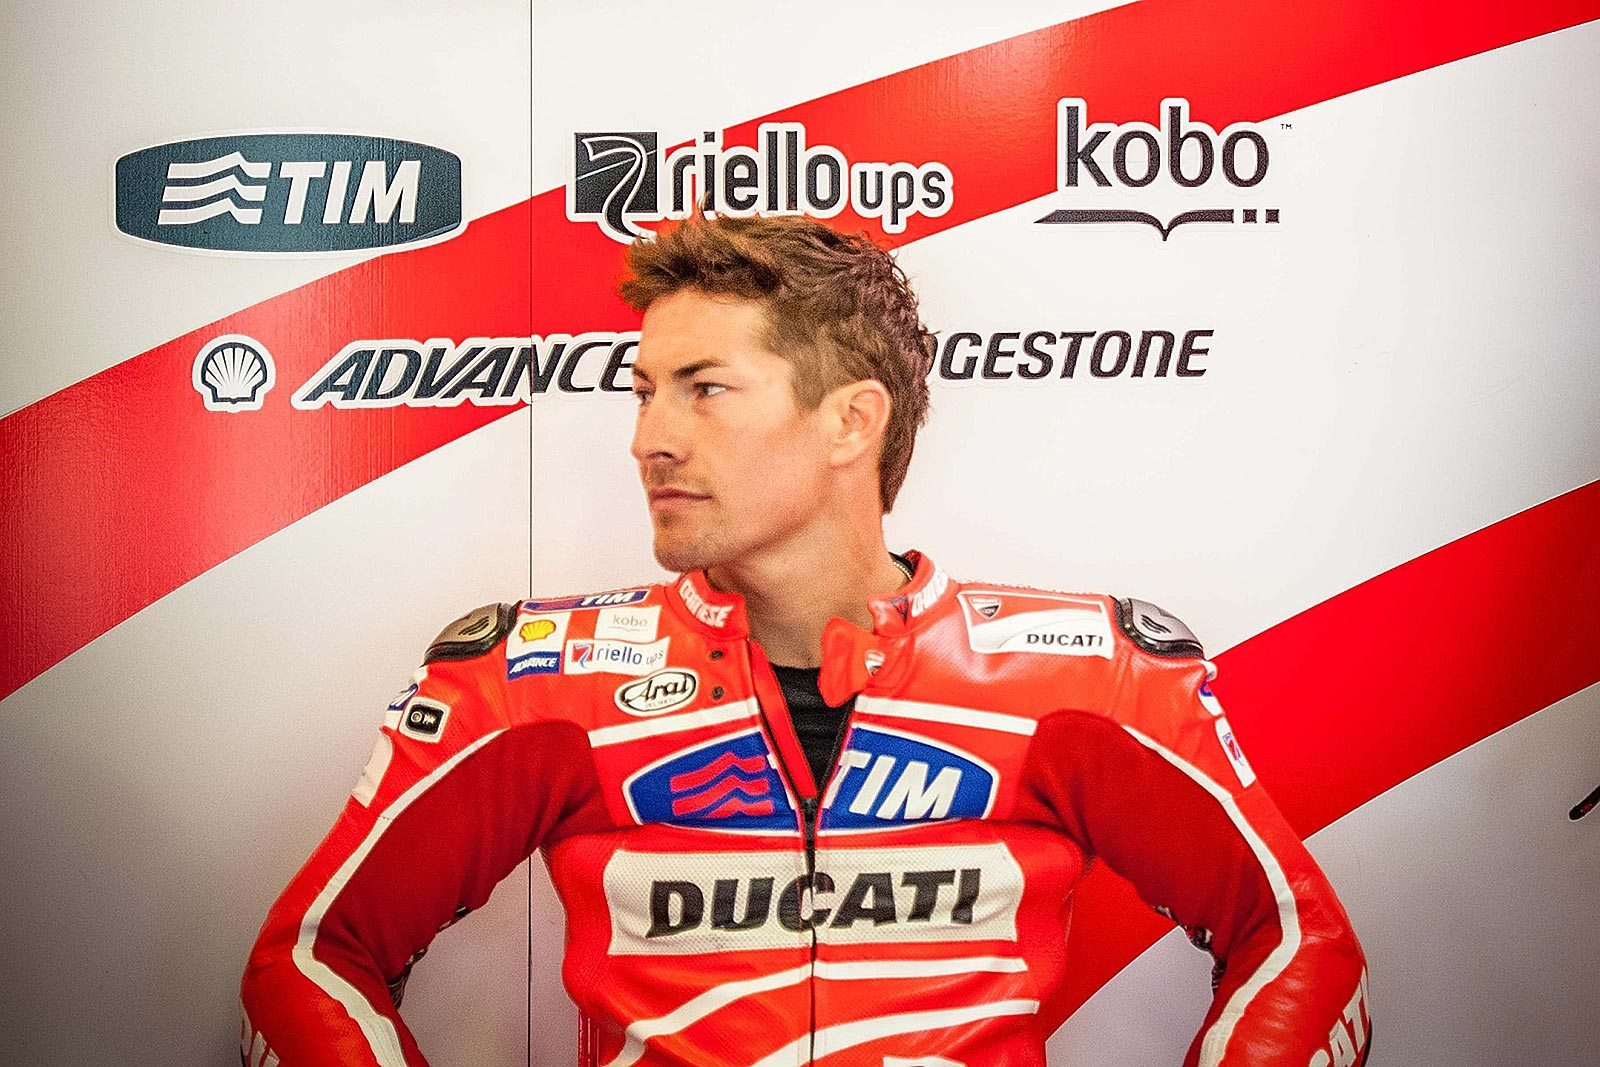 Nicky Hayden Will Be Inducted into the Motorsports Hall of Fame of America Later This Year